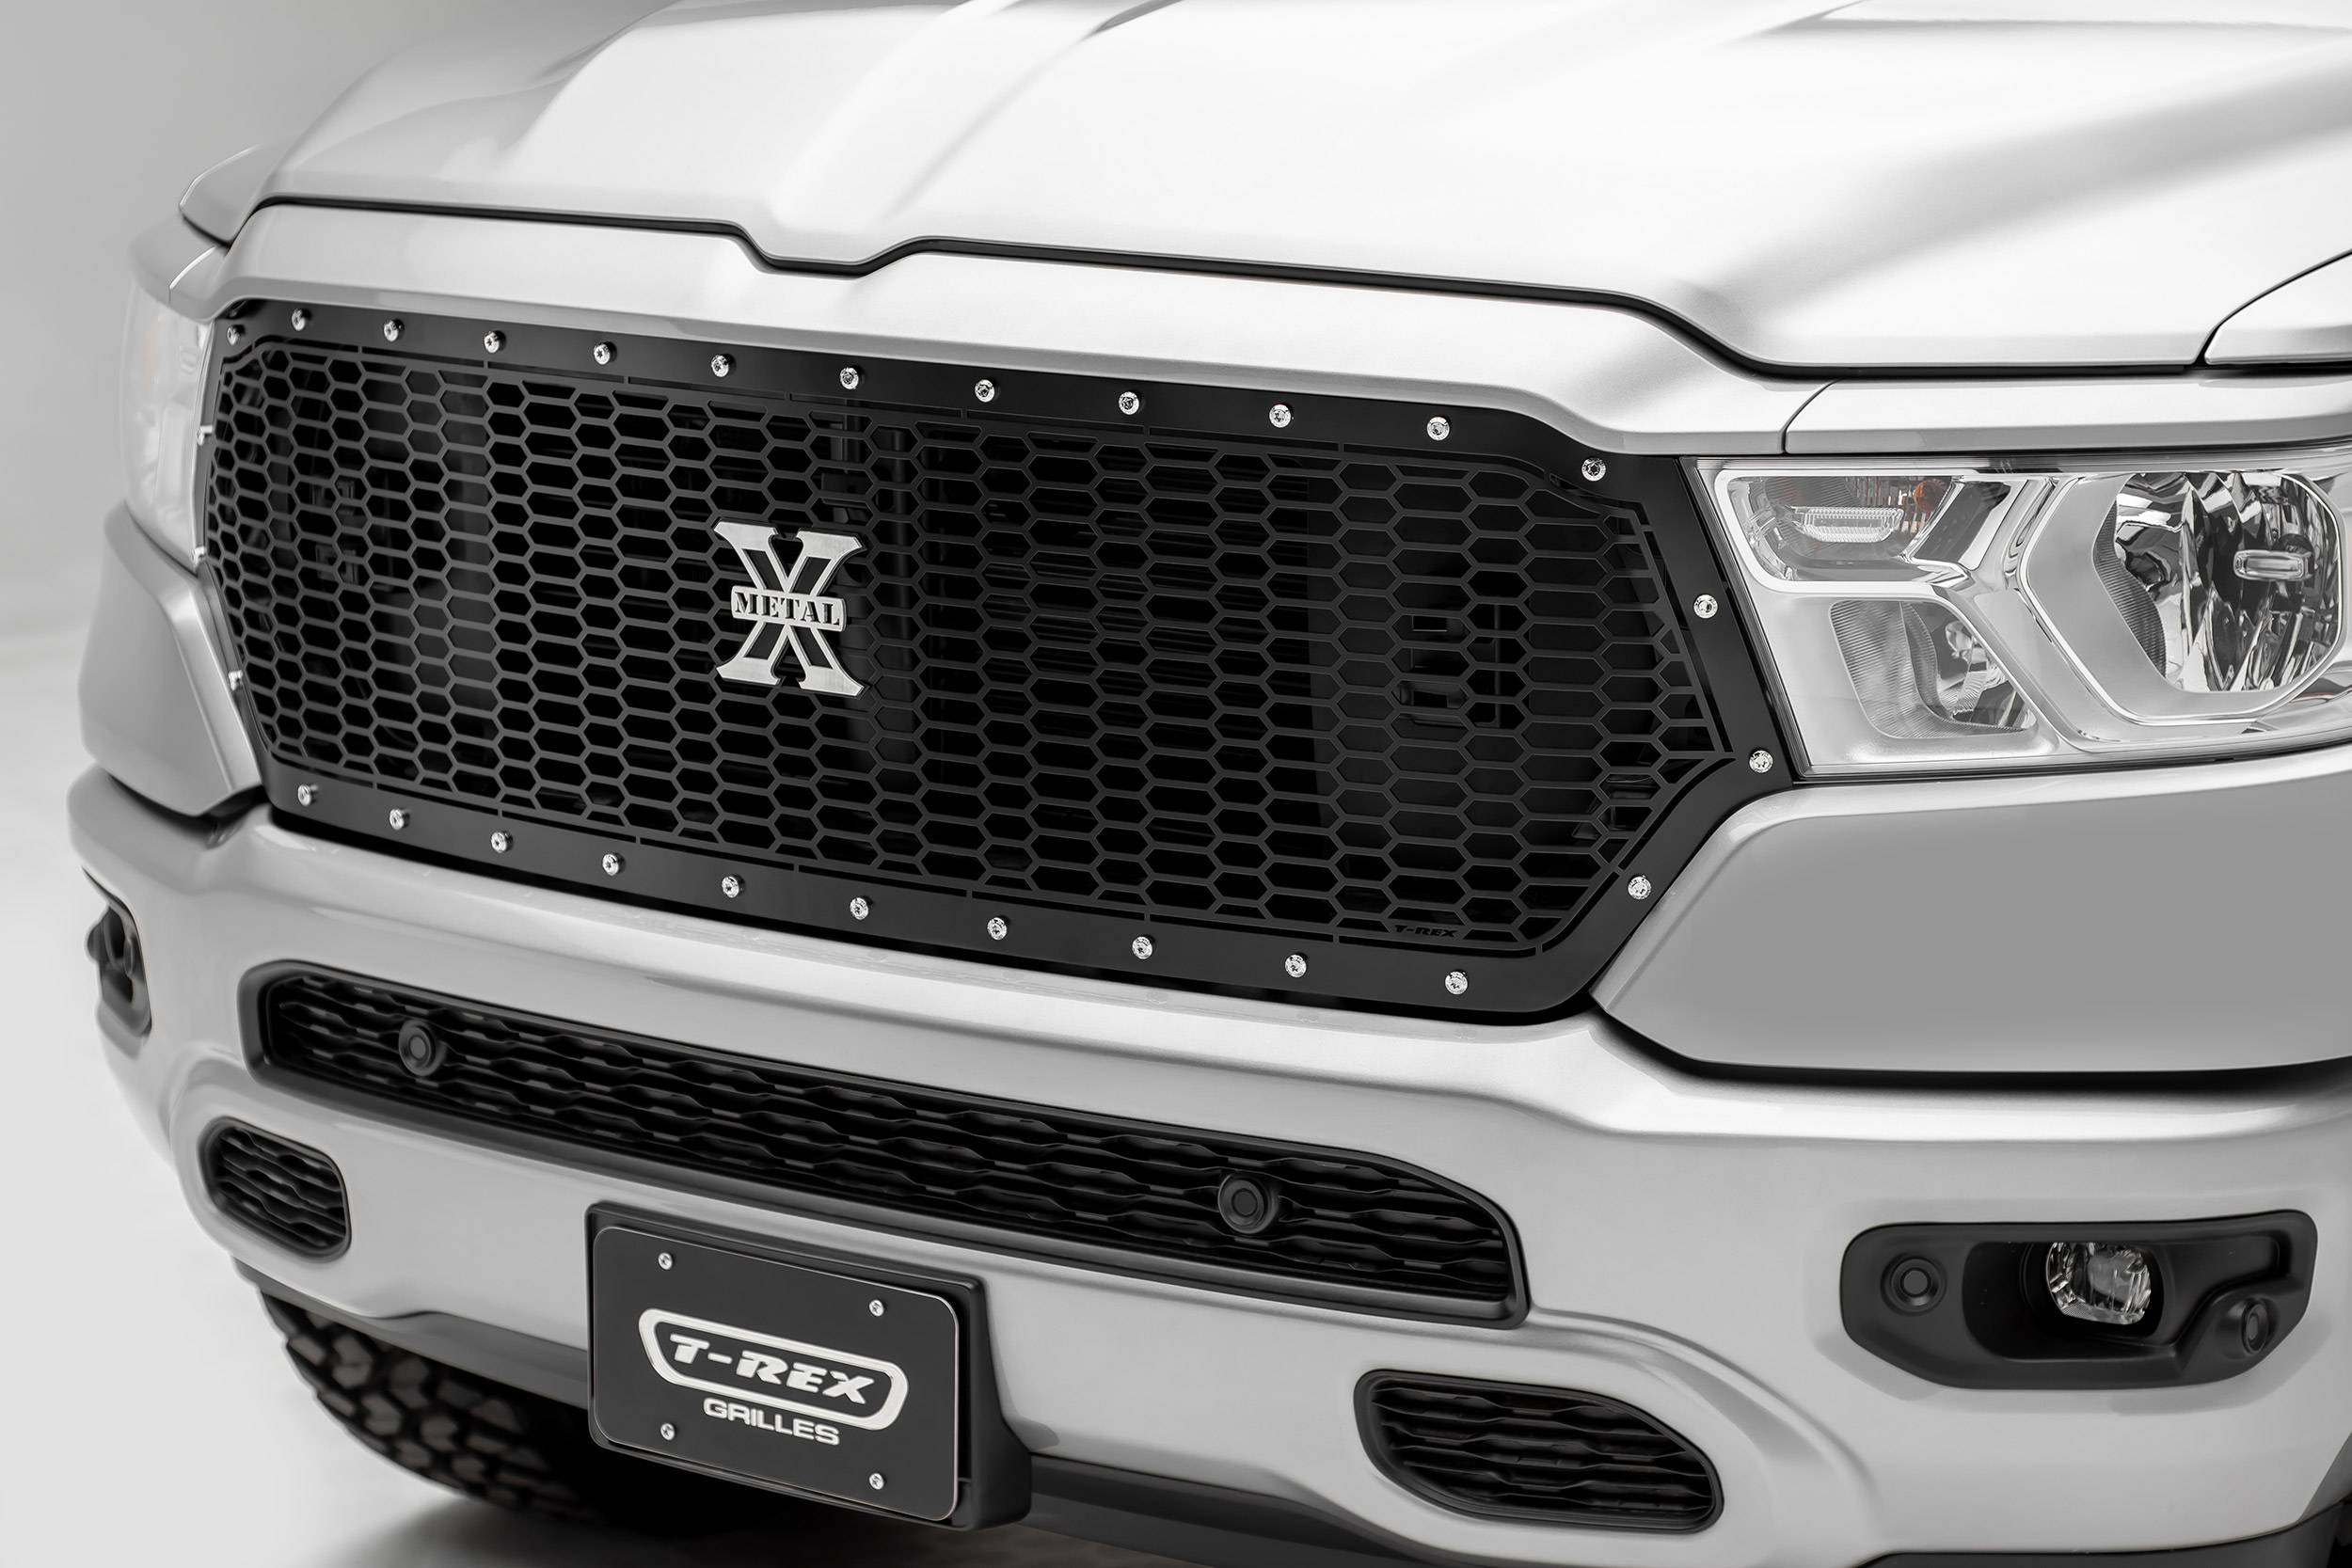 T-REX Grilles - 2019-2021 Ram 1500 Laramie, Lone Star, Big Horn, Tradesman Laser X Grille, Black, 1 Pc, Replacement, Chrome Studs, Does Not Fit Vehicles with Camera - PN #7714651